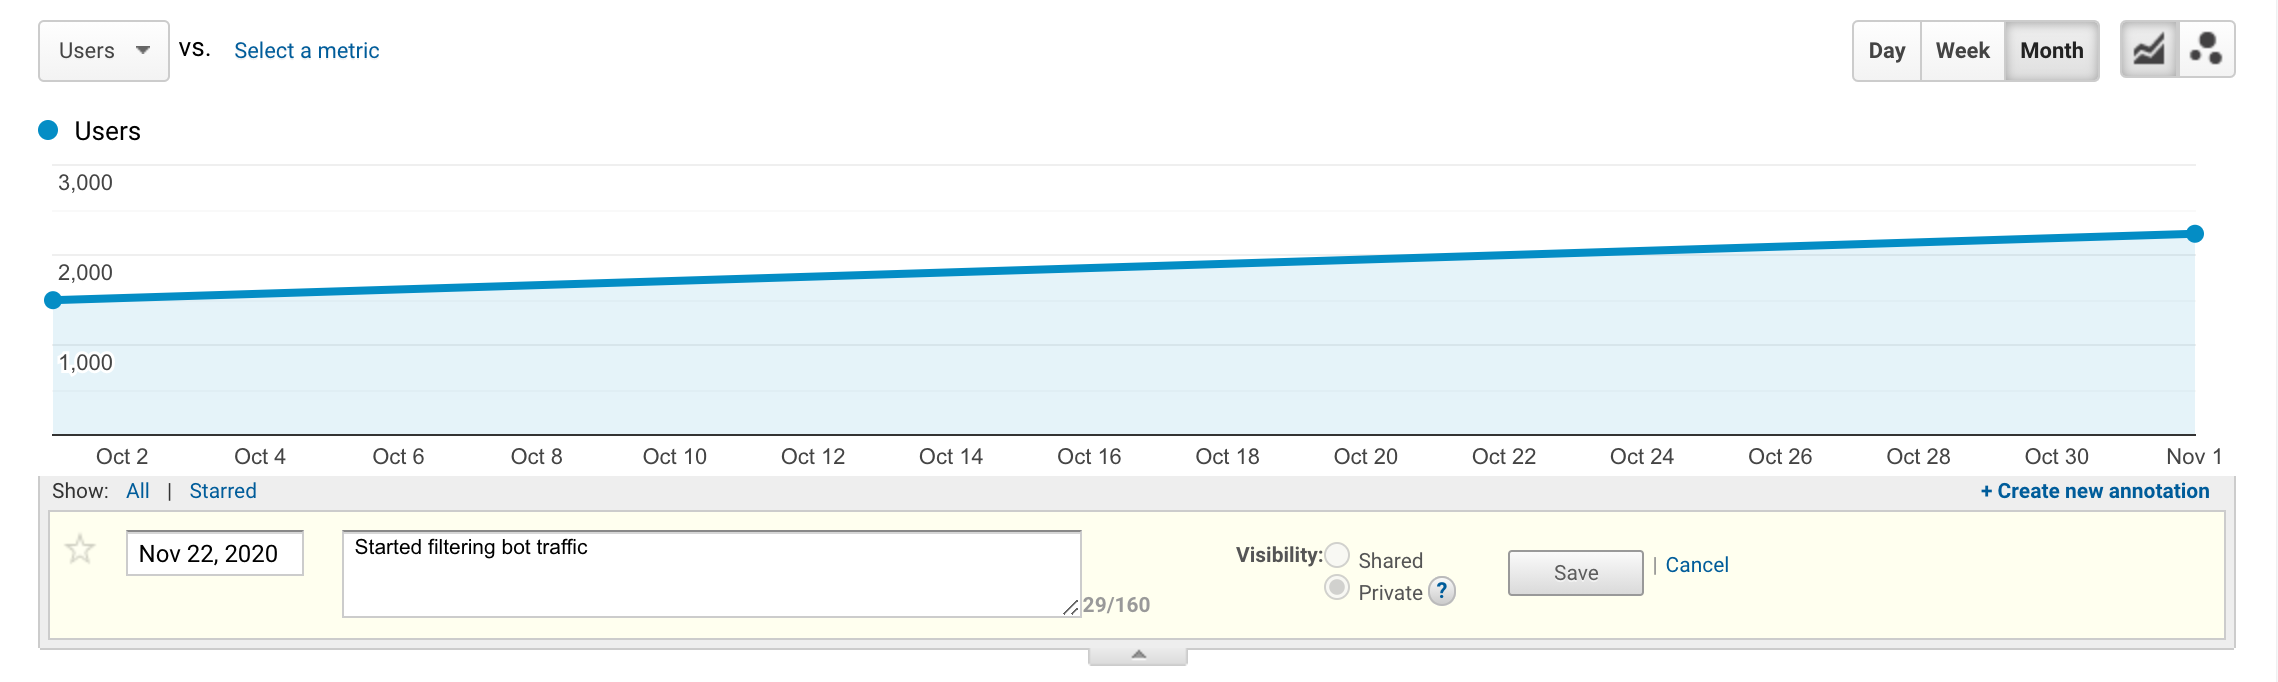 adding a new annotation in Google Analytics